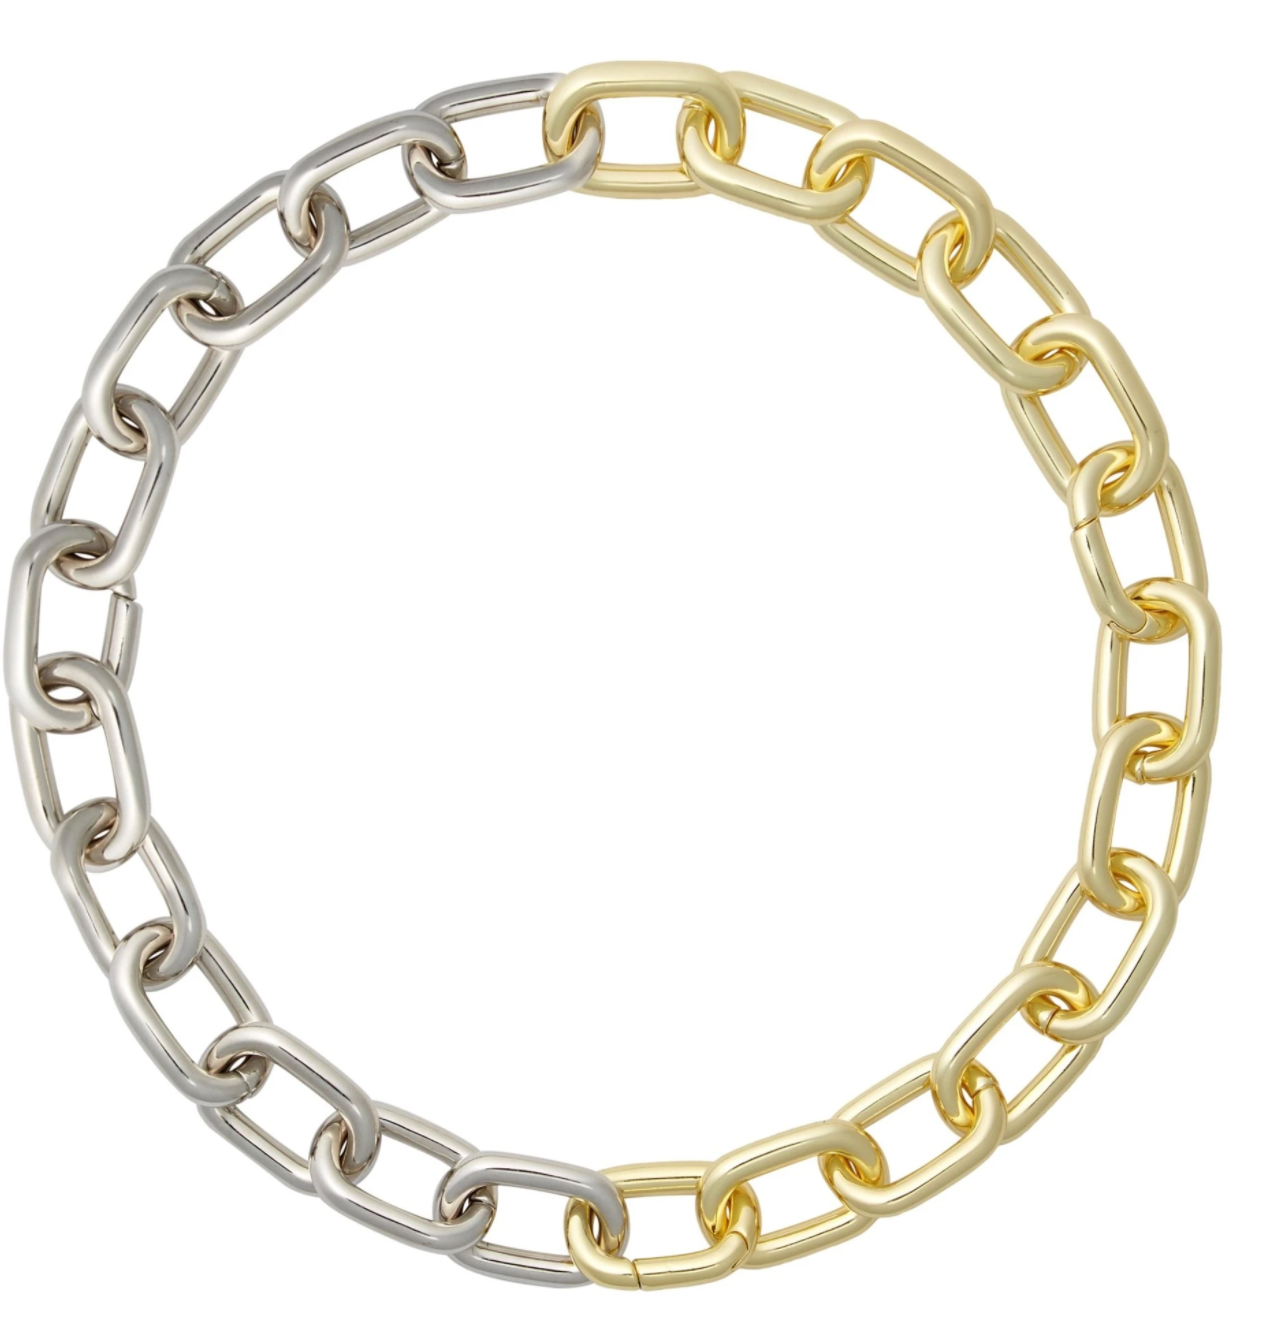 Interchangeable Link Necklace in Gold and Silver SPlit